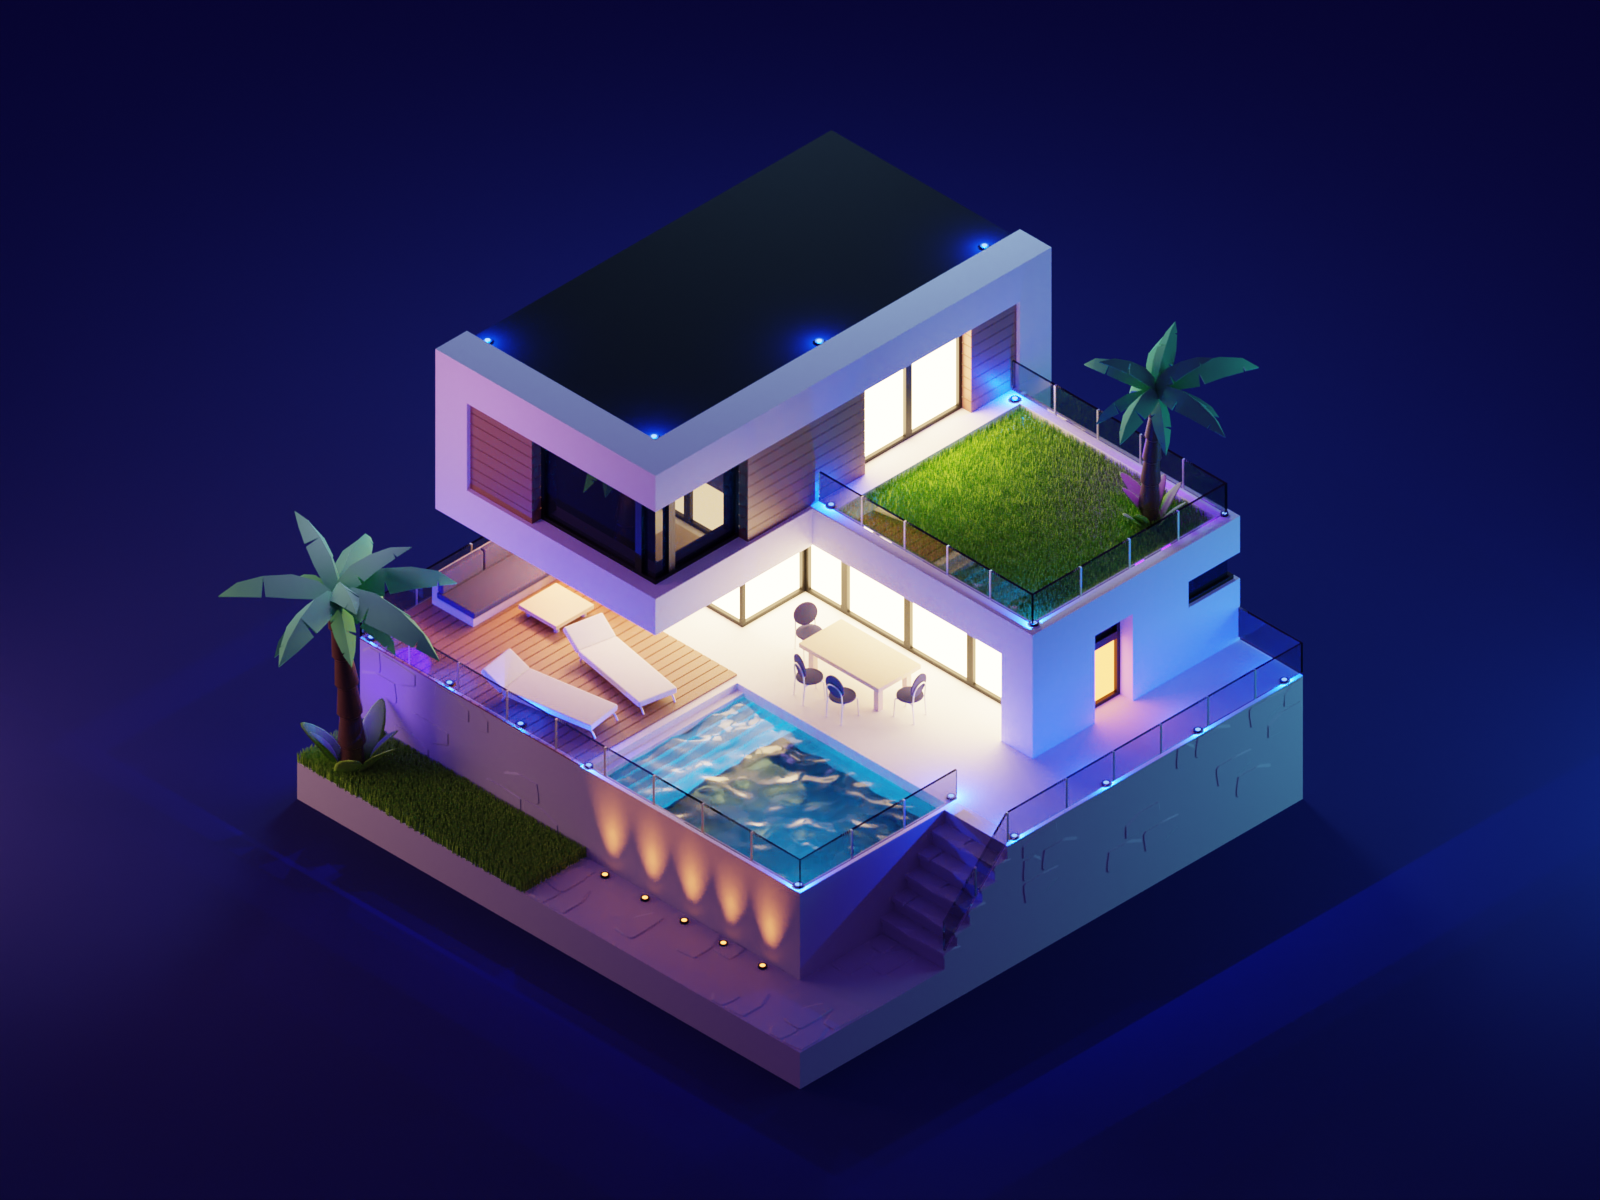 Summer House pool summer house architecutre lowpolyart low poly diorama isometric lowpoly blender illustration 3d